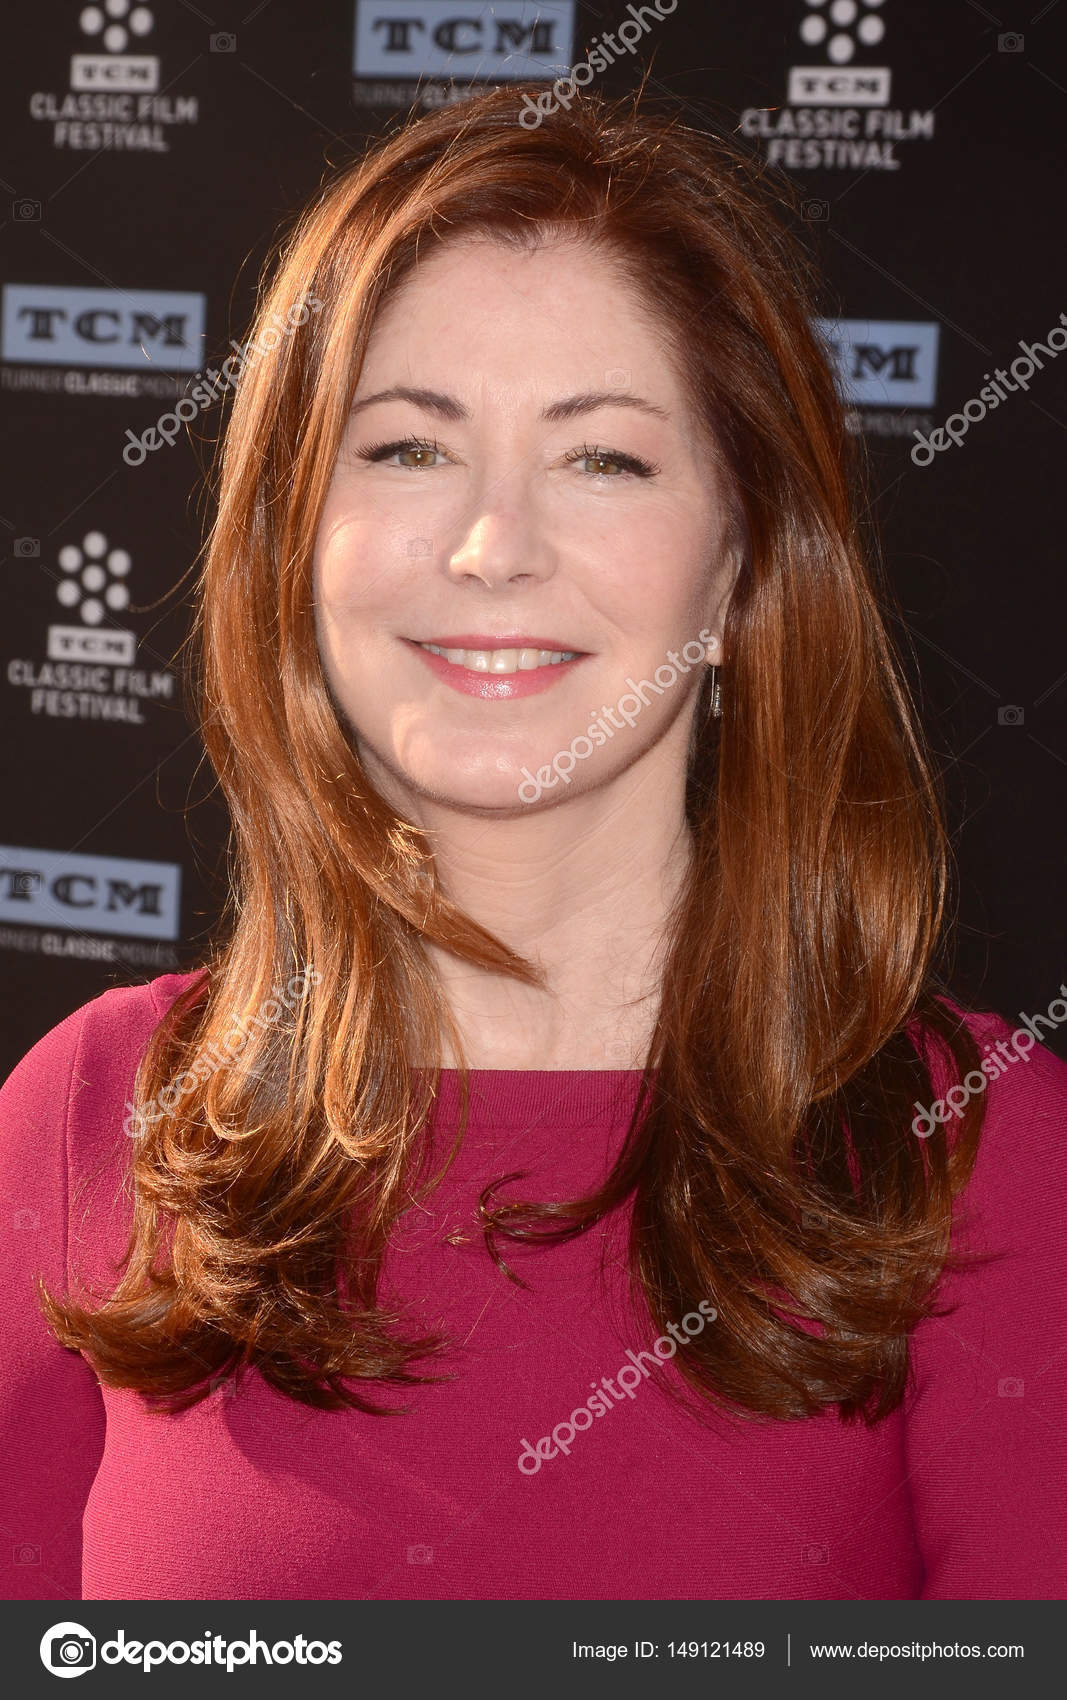 ICloud Dana Delany nude (31 photos), Pussy, Fappening, Instagram, swimsuit 2020